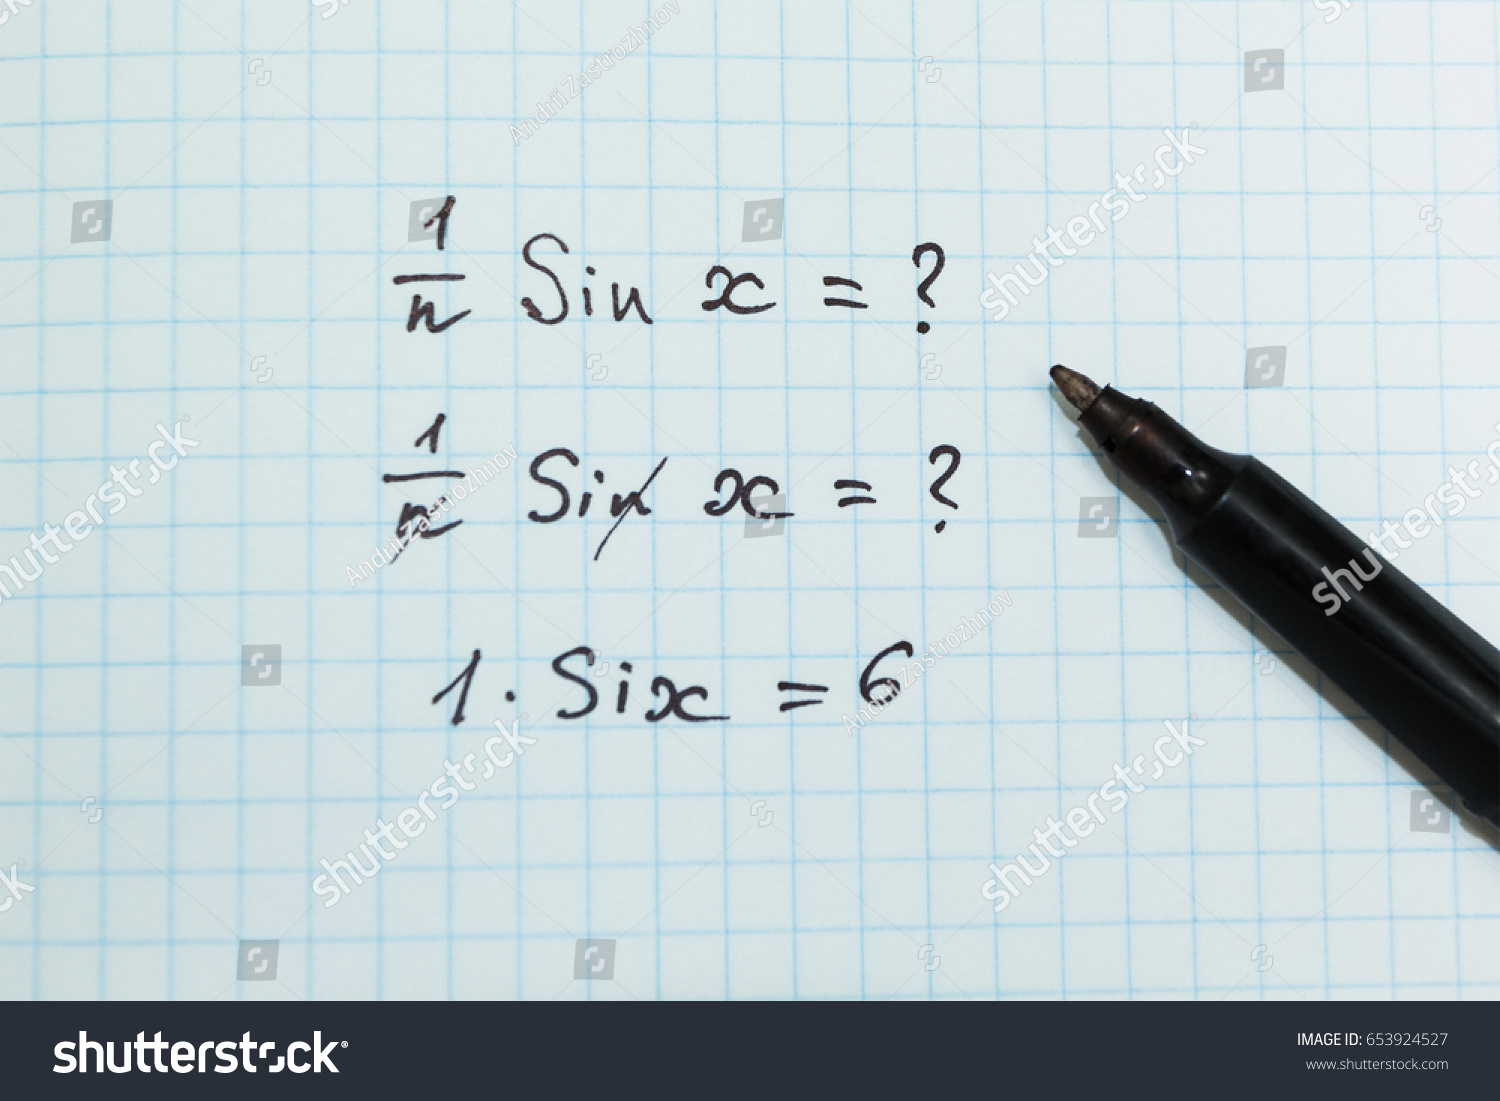 Wrong Solution Mathematical Example Math Problems Stock Photo ...